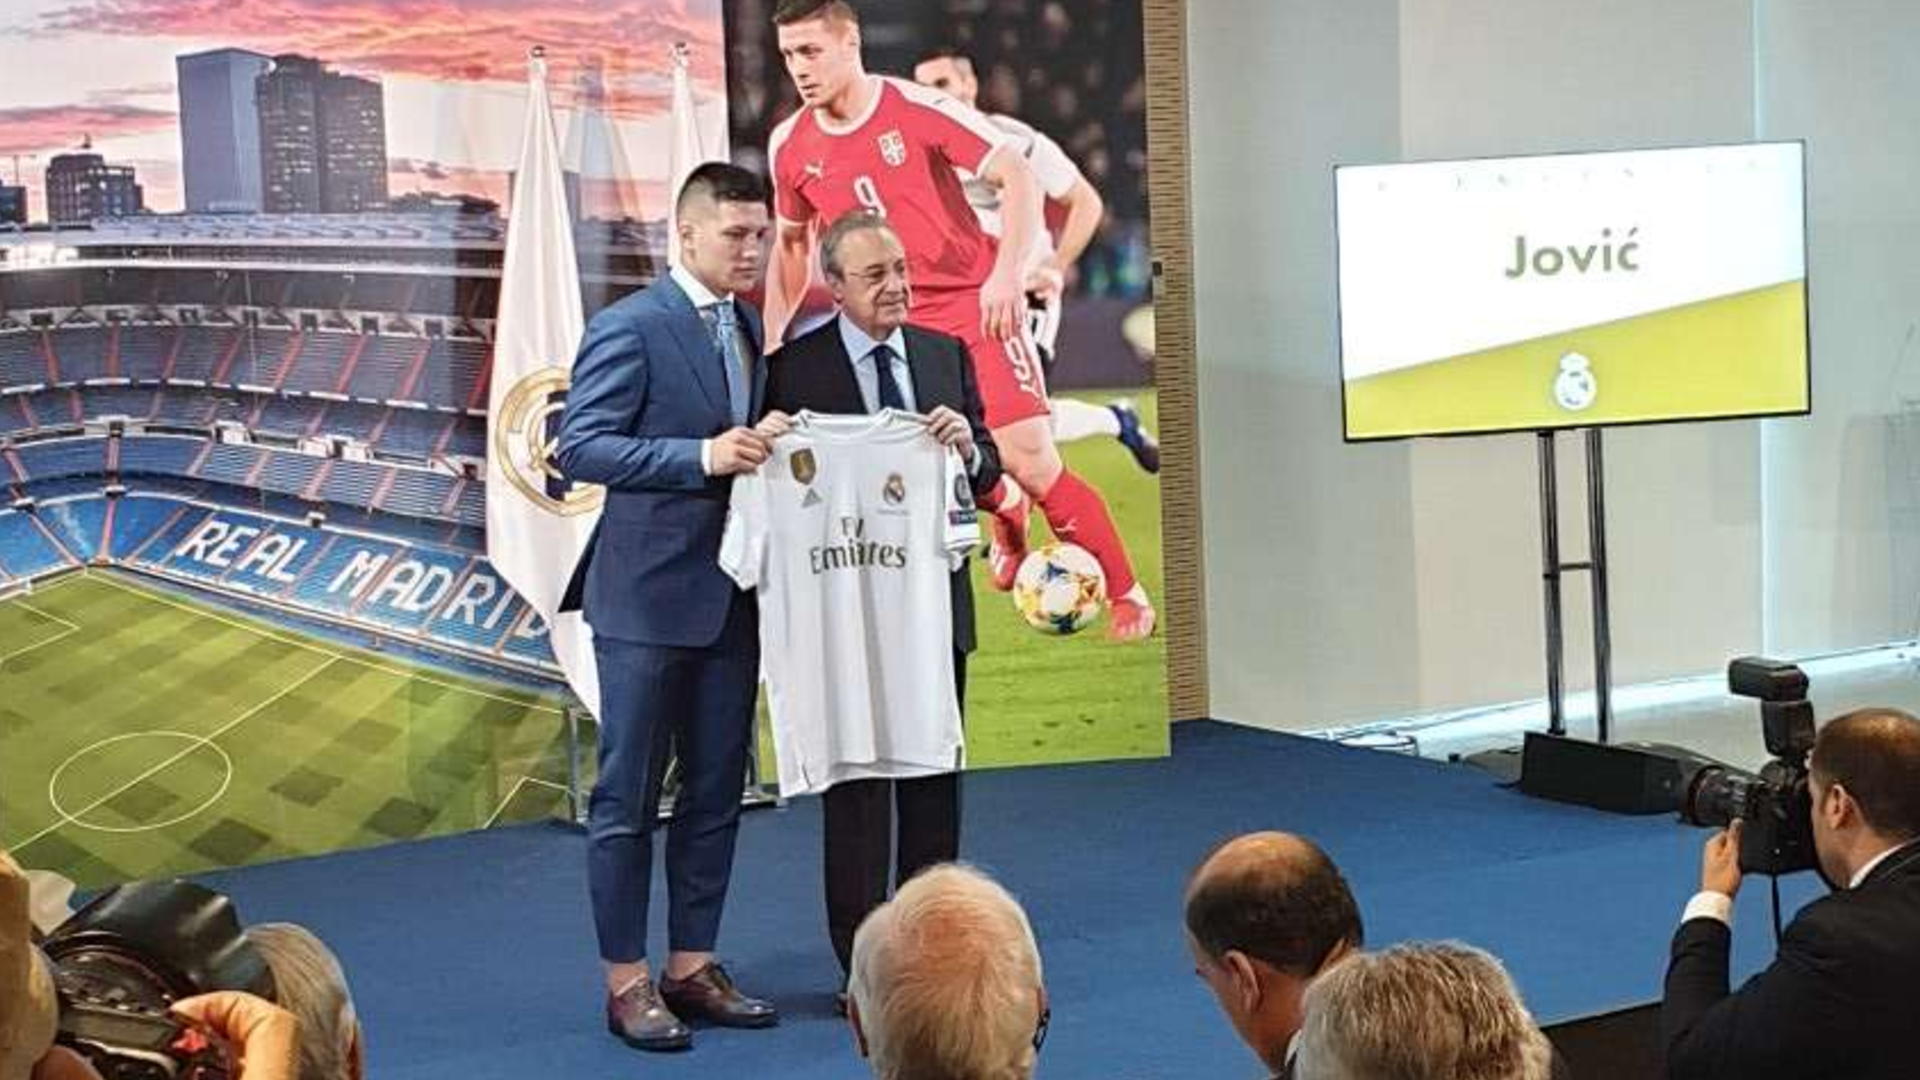 Luka Jovic and Florentino Perez during the official unveiling as Real Madrid player